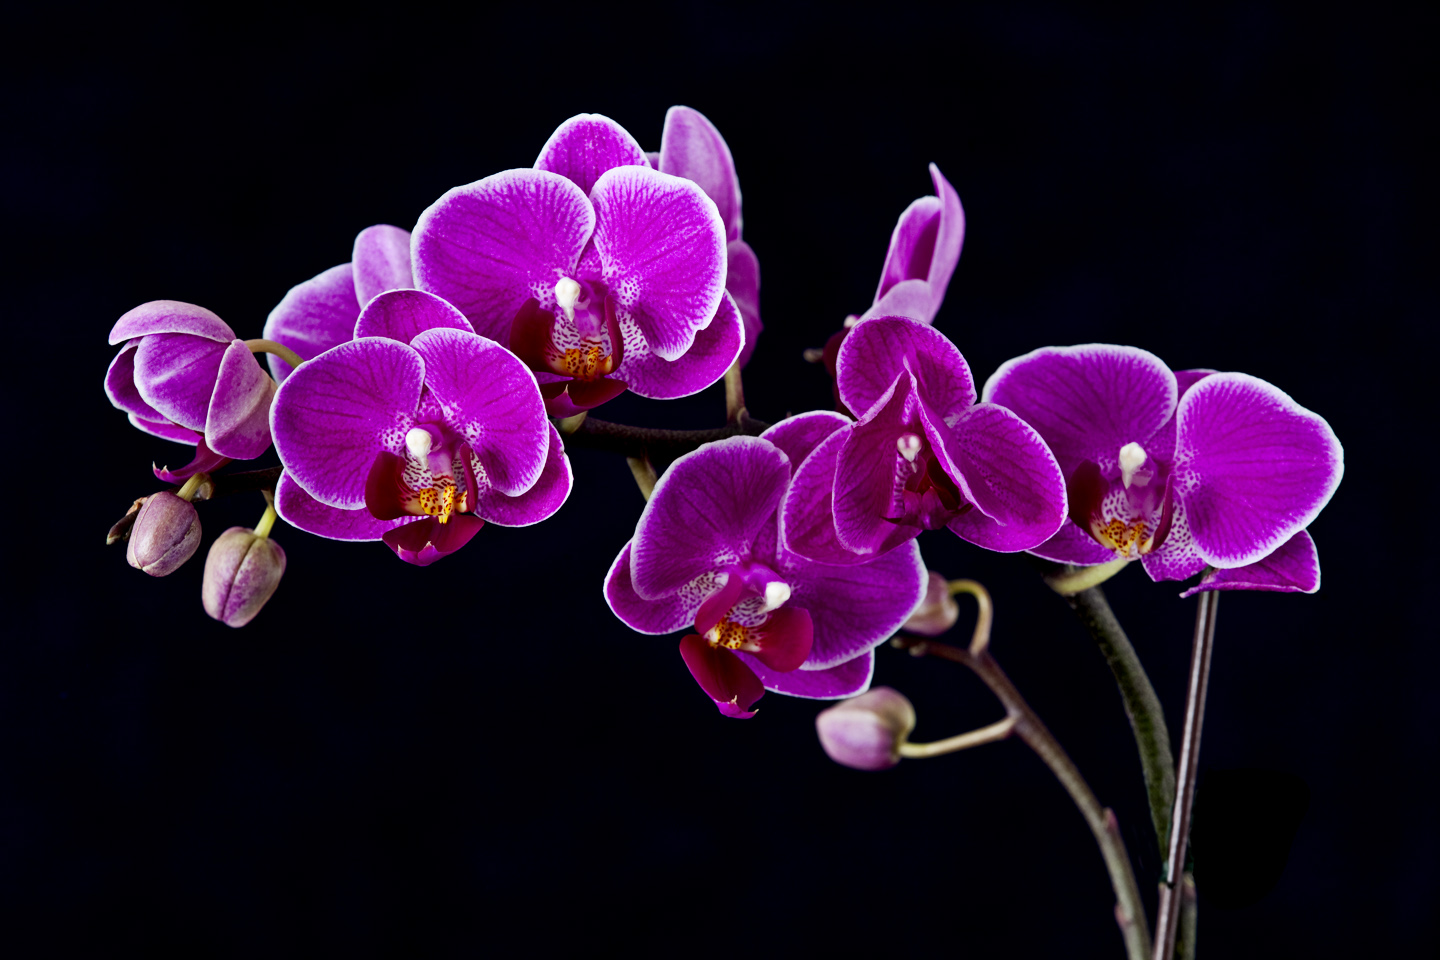 Purple Orchid Flowers flowers Pinterest Black 1440x960